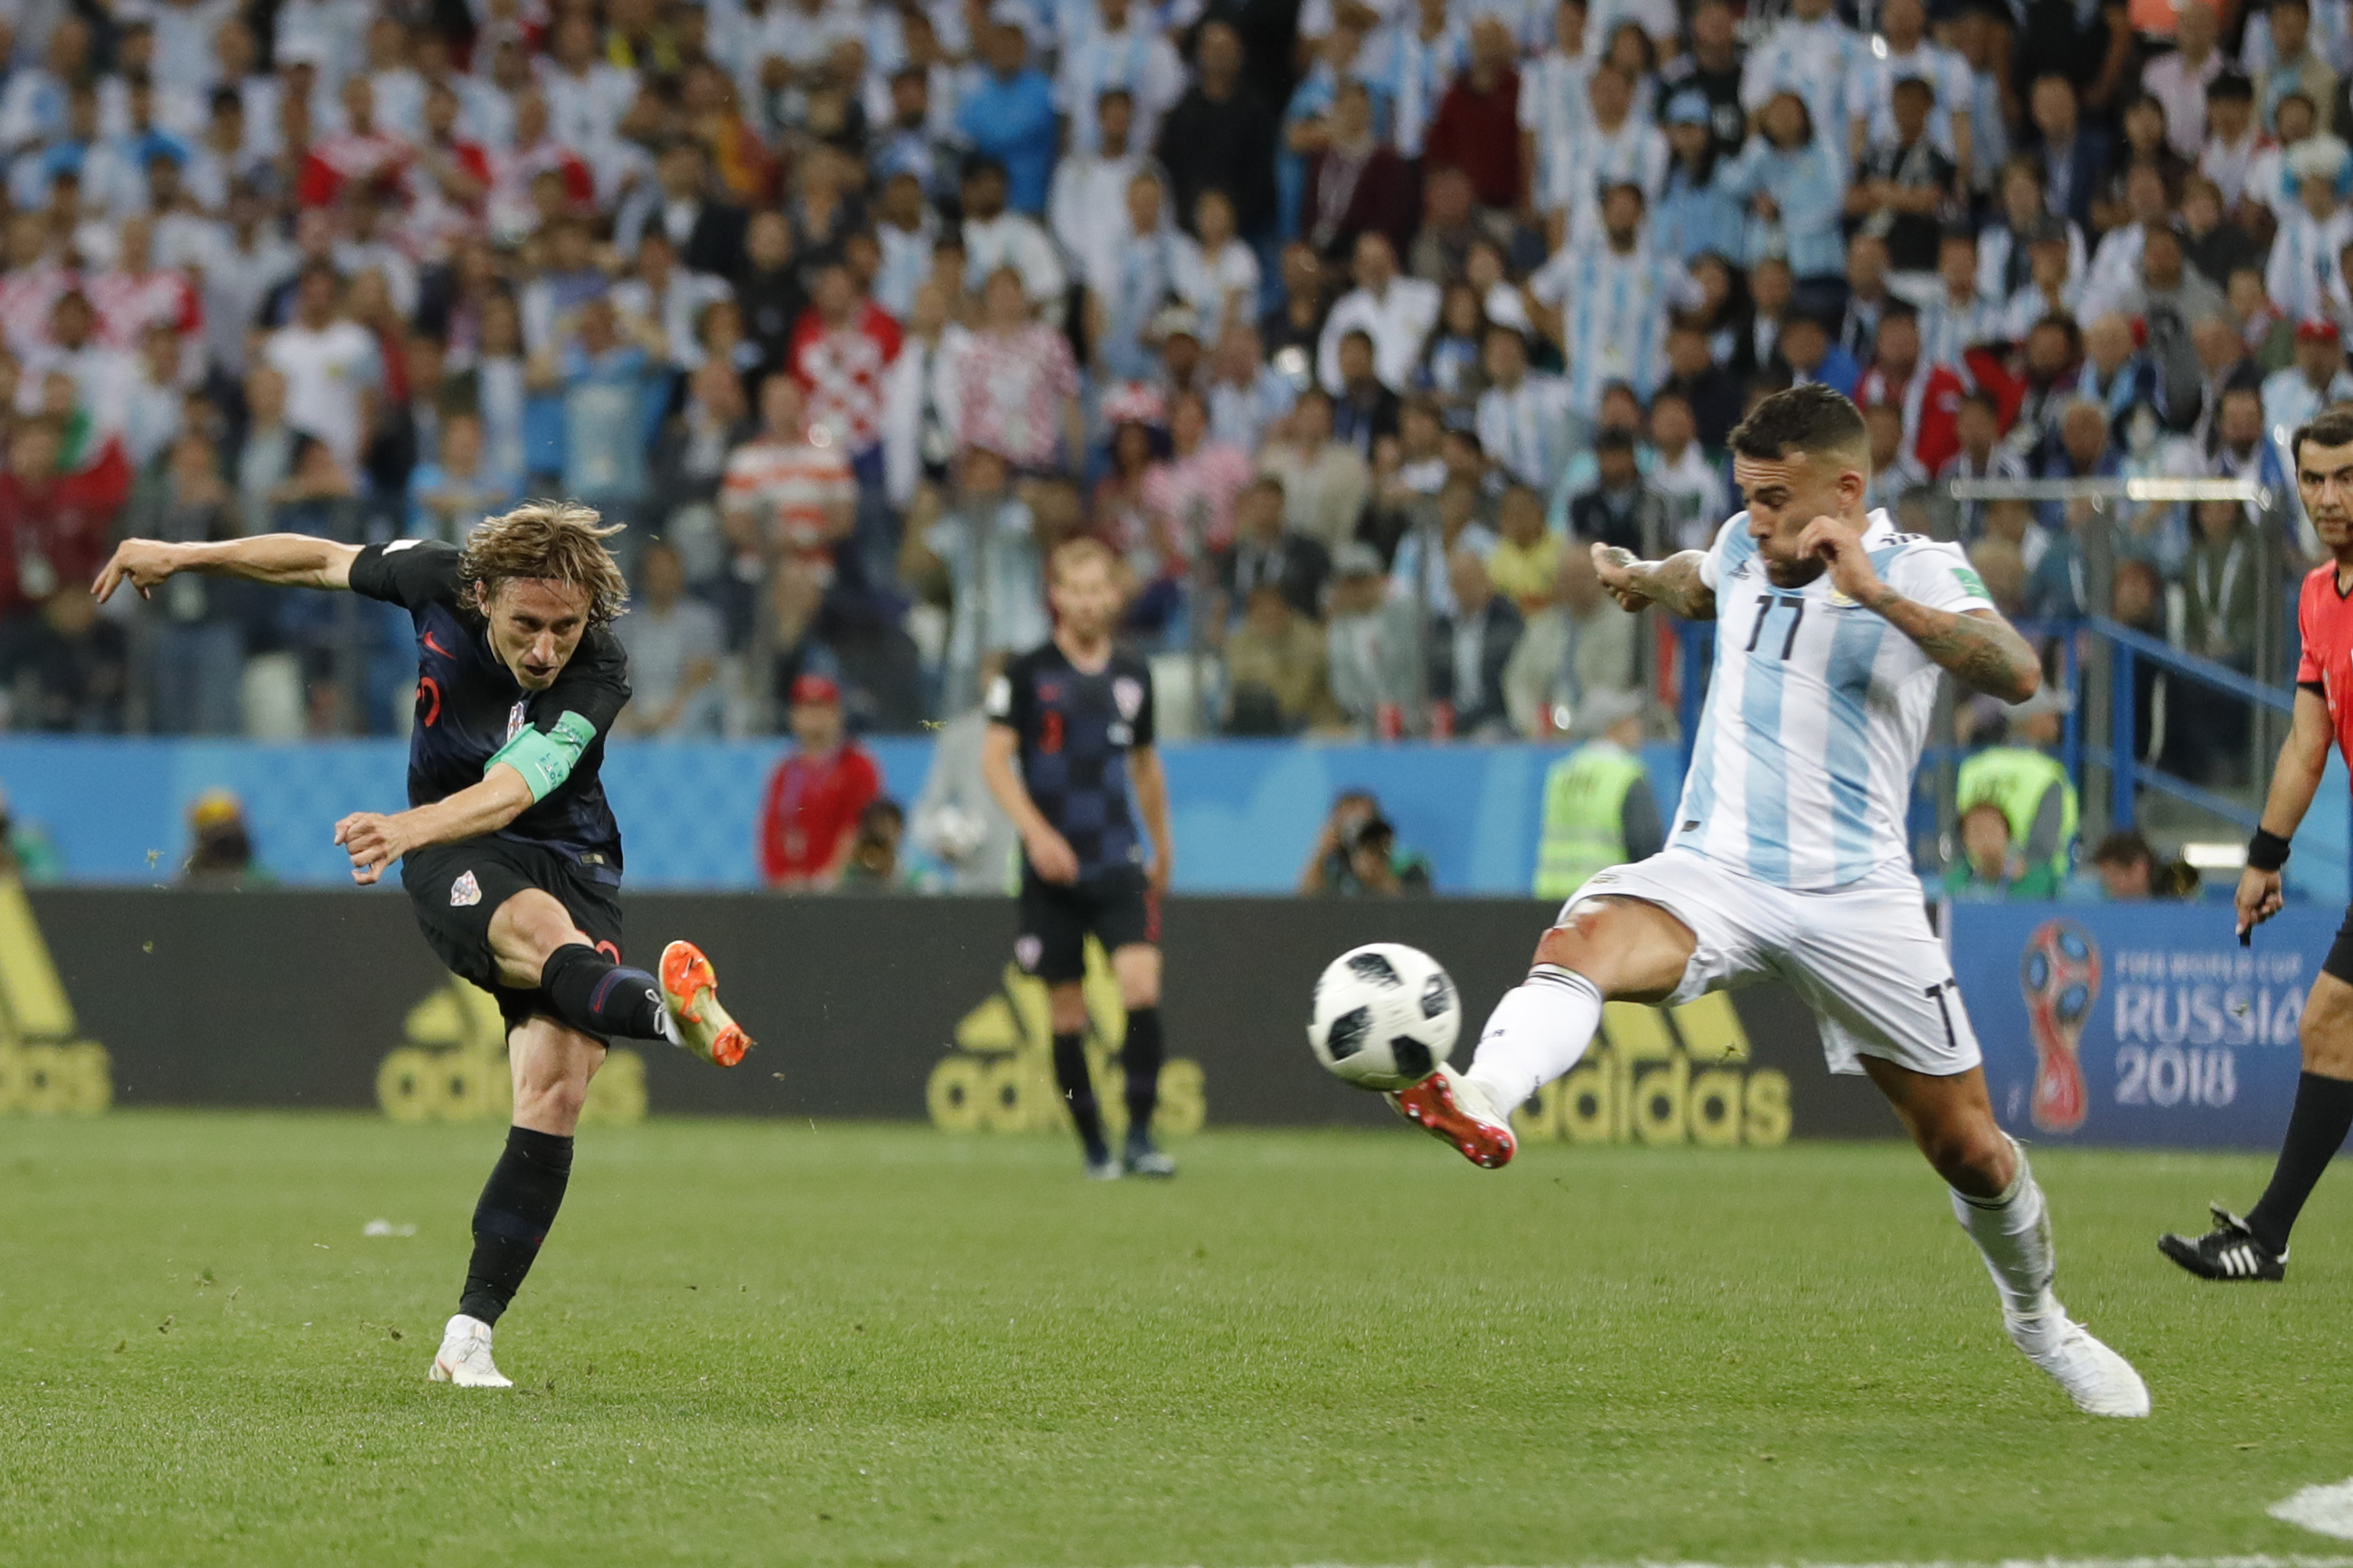 <div class='meta'><div class='origin-logo' data-origin='none'></div><span class='caption-text' data-credit='Ricardo Mazalan/AP Photo'>Croatia's Luka Modric, left, shoots the ball to score his side's second goal during the group D match between Argentina and Croatia in Nizhny Novgorod Stadium on June 21.</span></div>